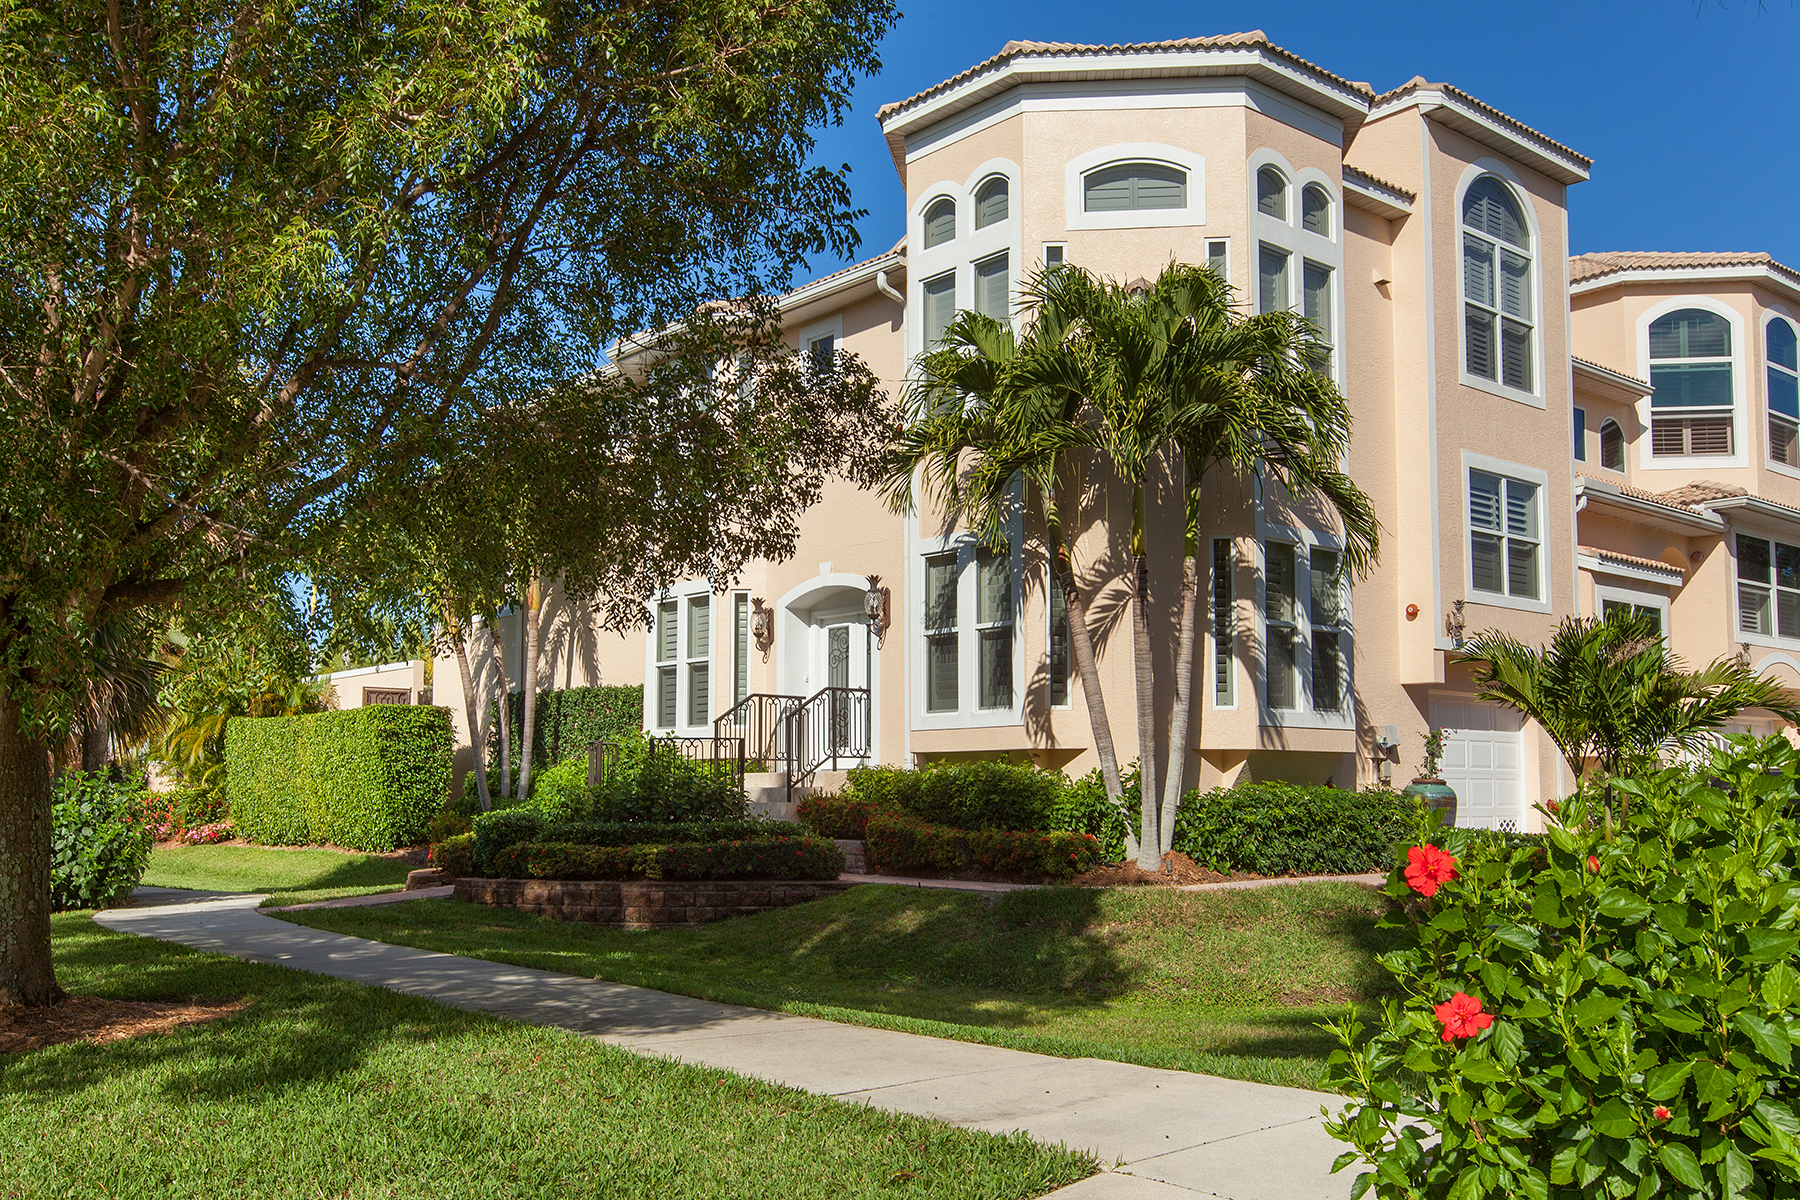 sales property at 585 Broad Ave S, Naples, FL 34102